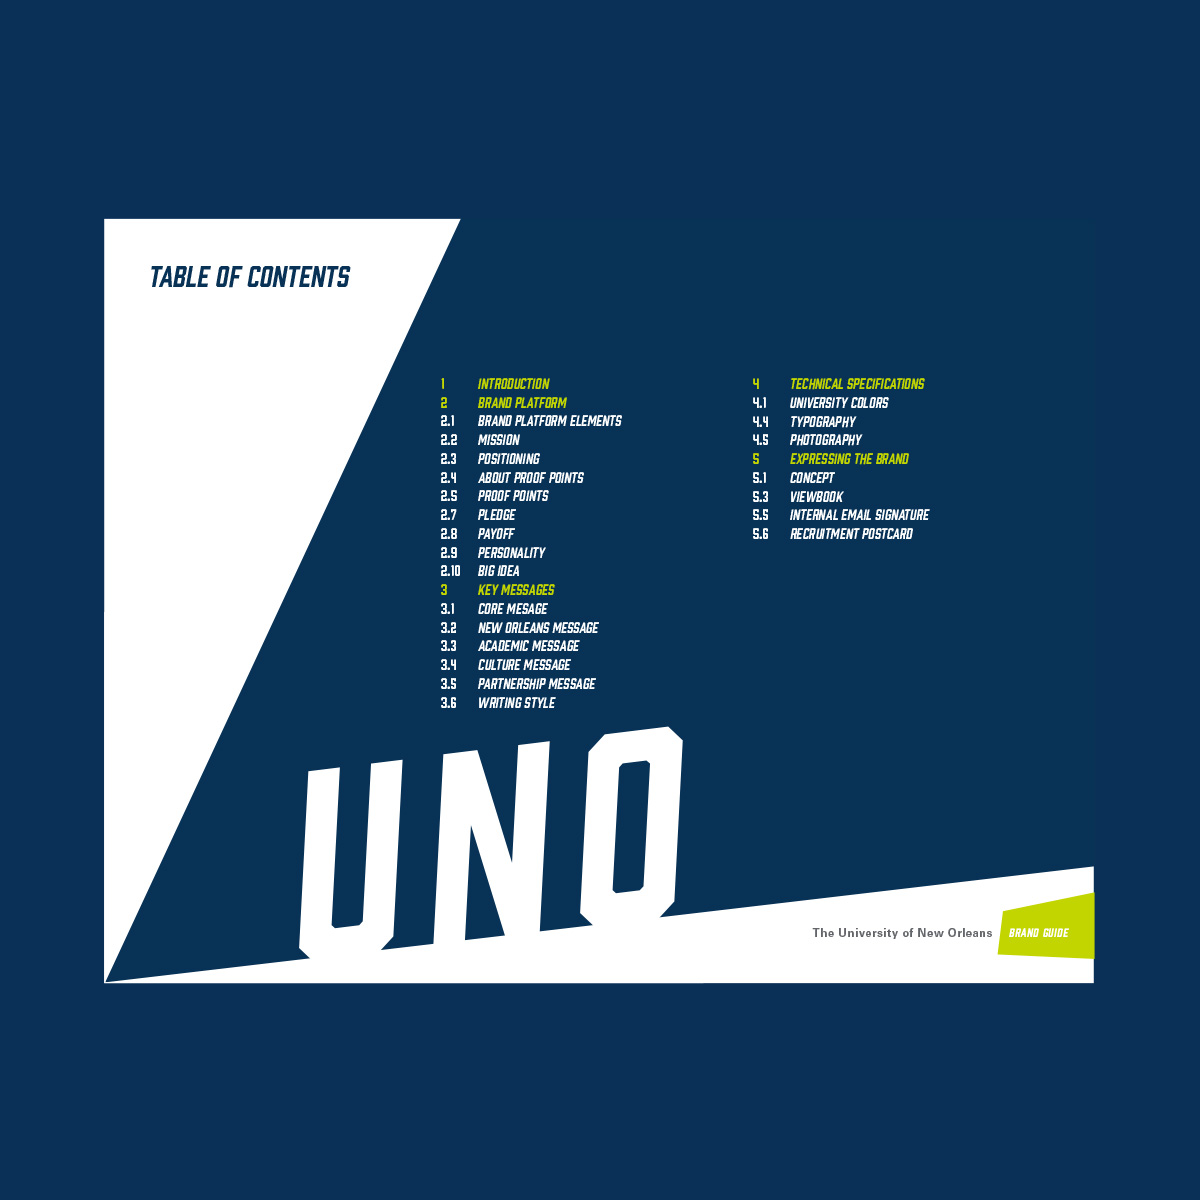 Table of contents of UNO brand guide.